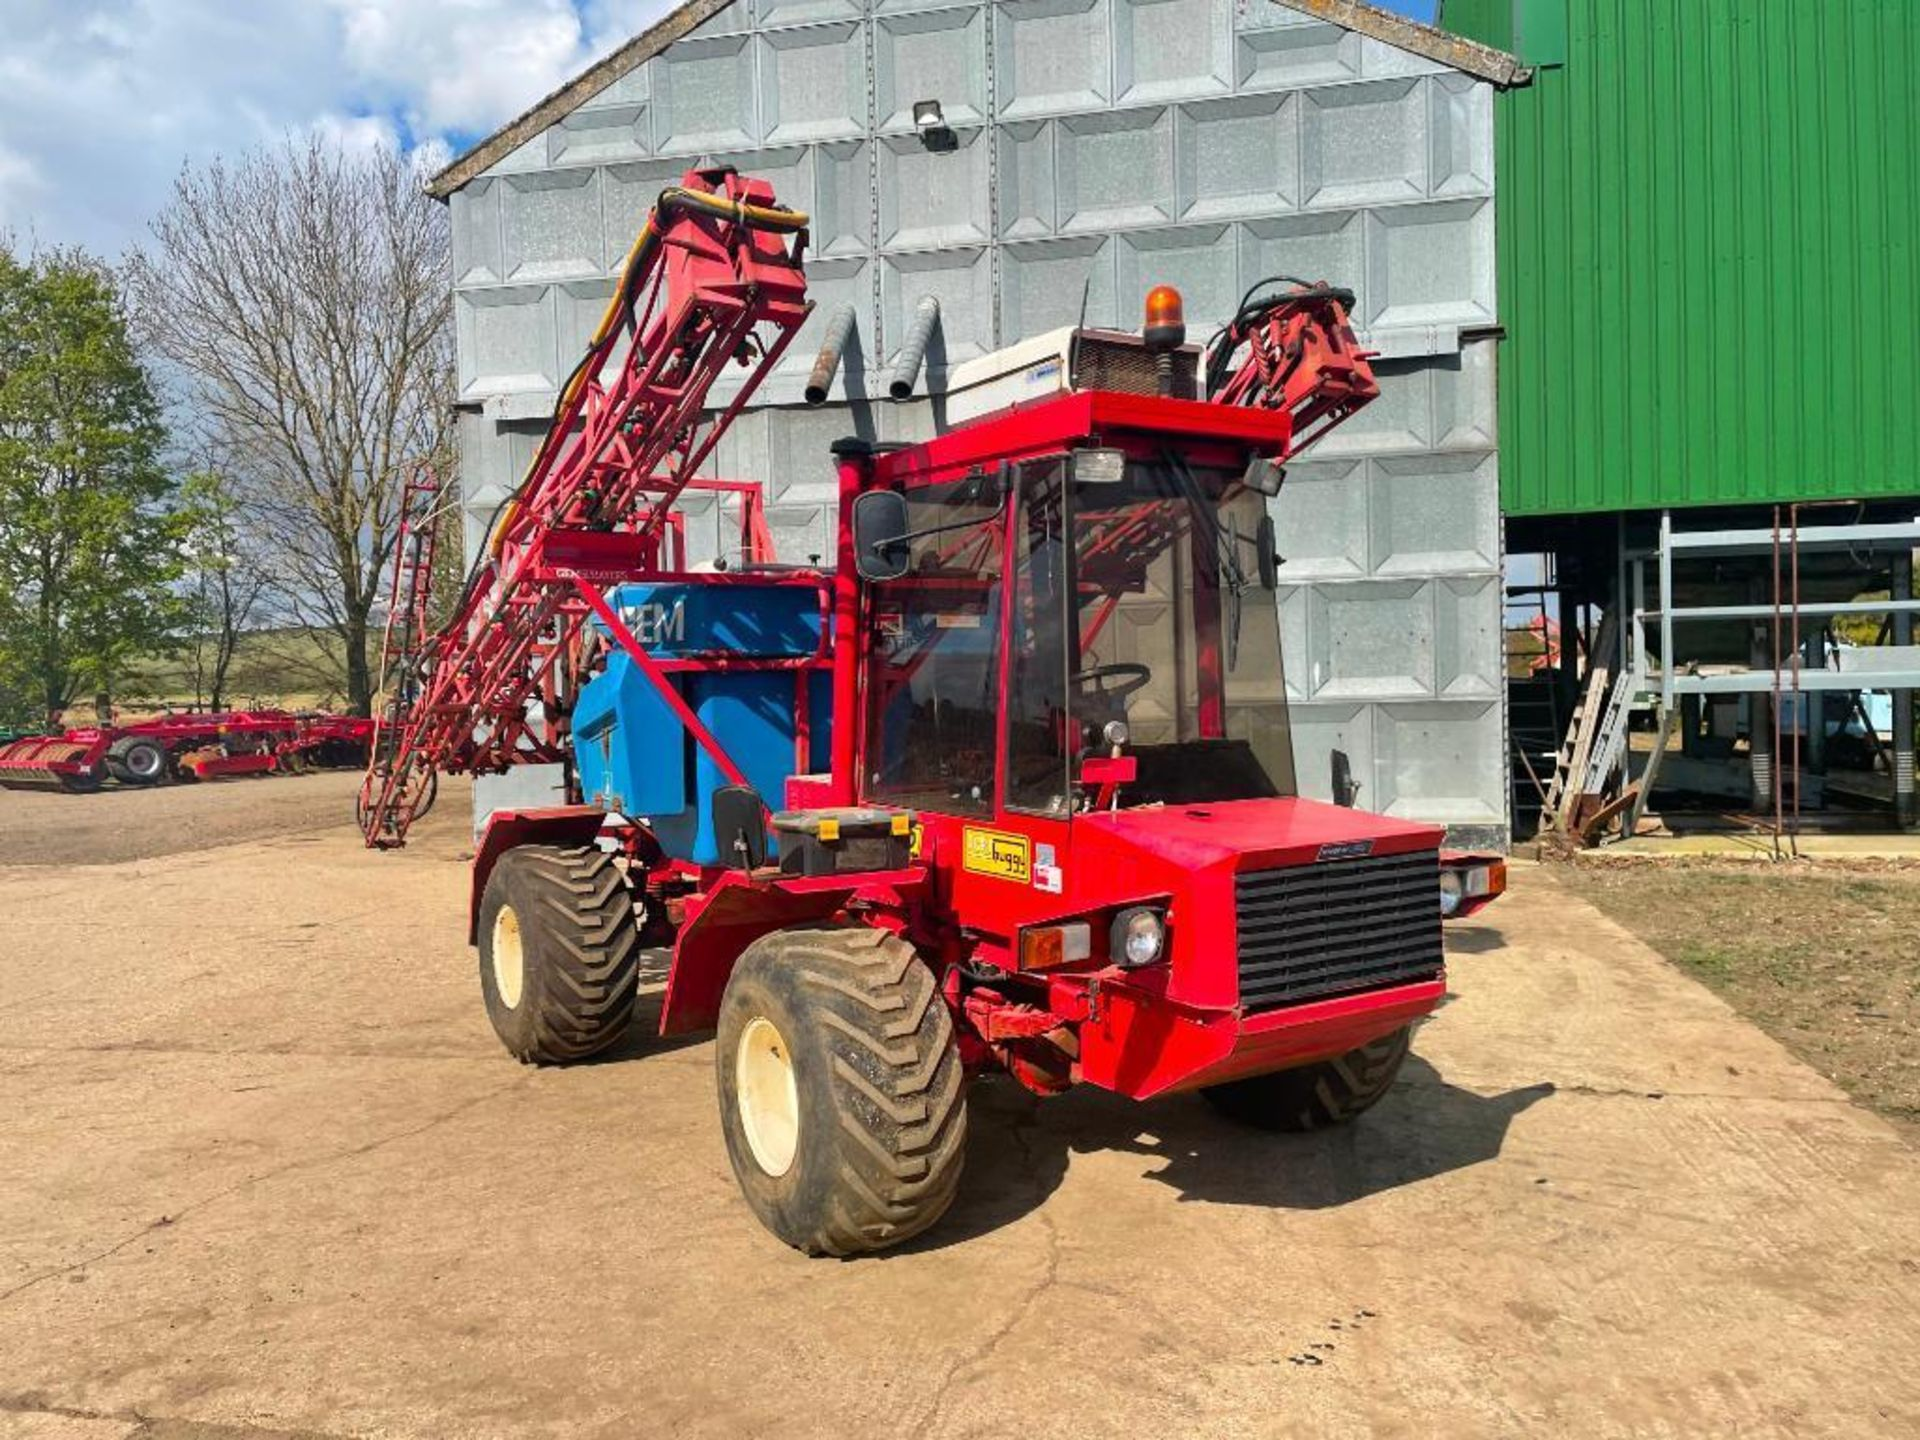 1995 Frazier Agri-Buggy SD with GEM 24m self propelled sprayer, 1500l tank on 38x20.00-16 wheels and - Image 8 of 27